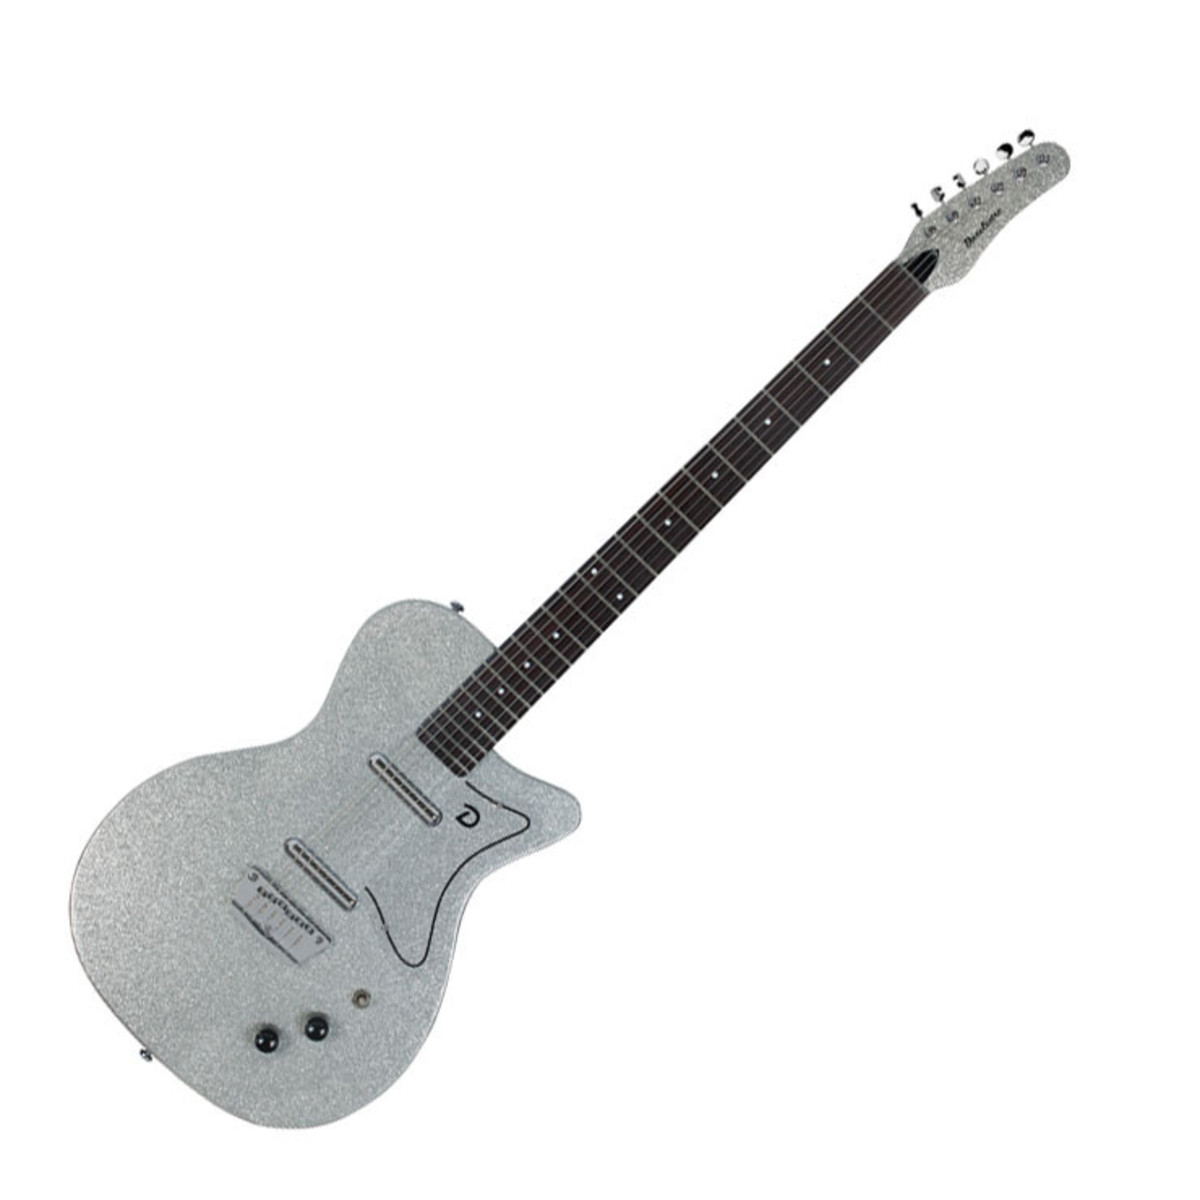 DISC Danelectro 56 Baritone Electric Guitar, Silver Metal ...